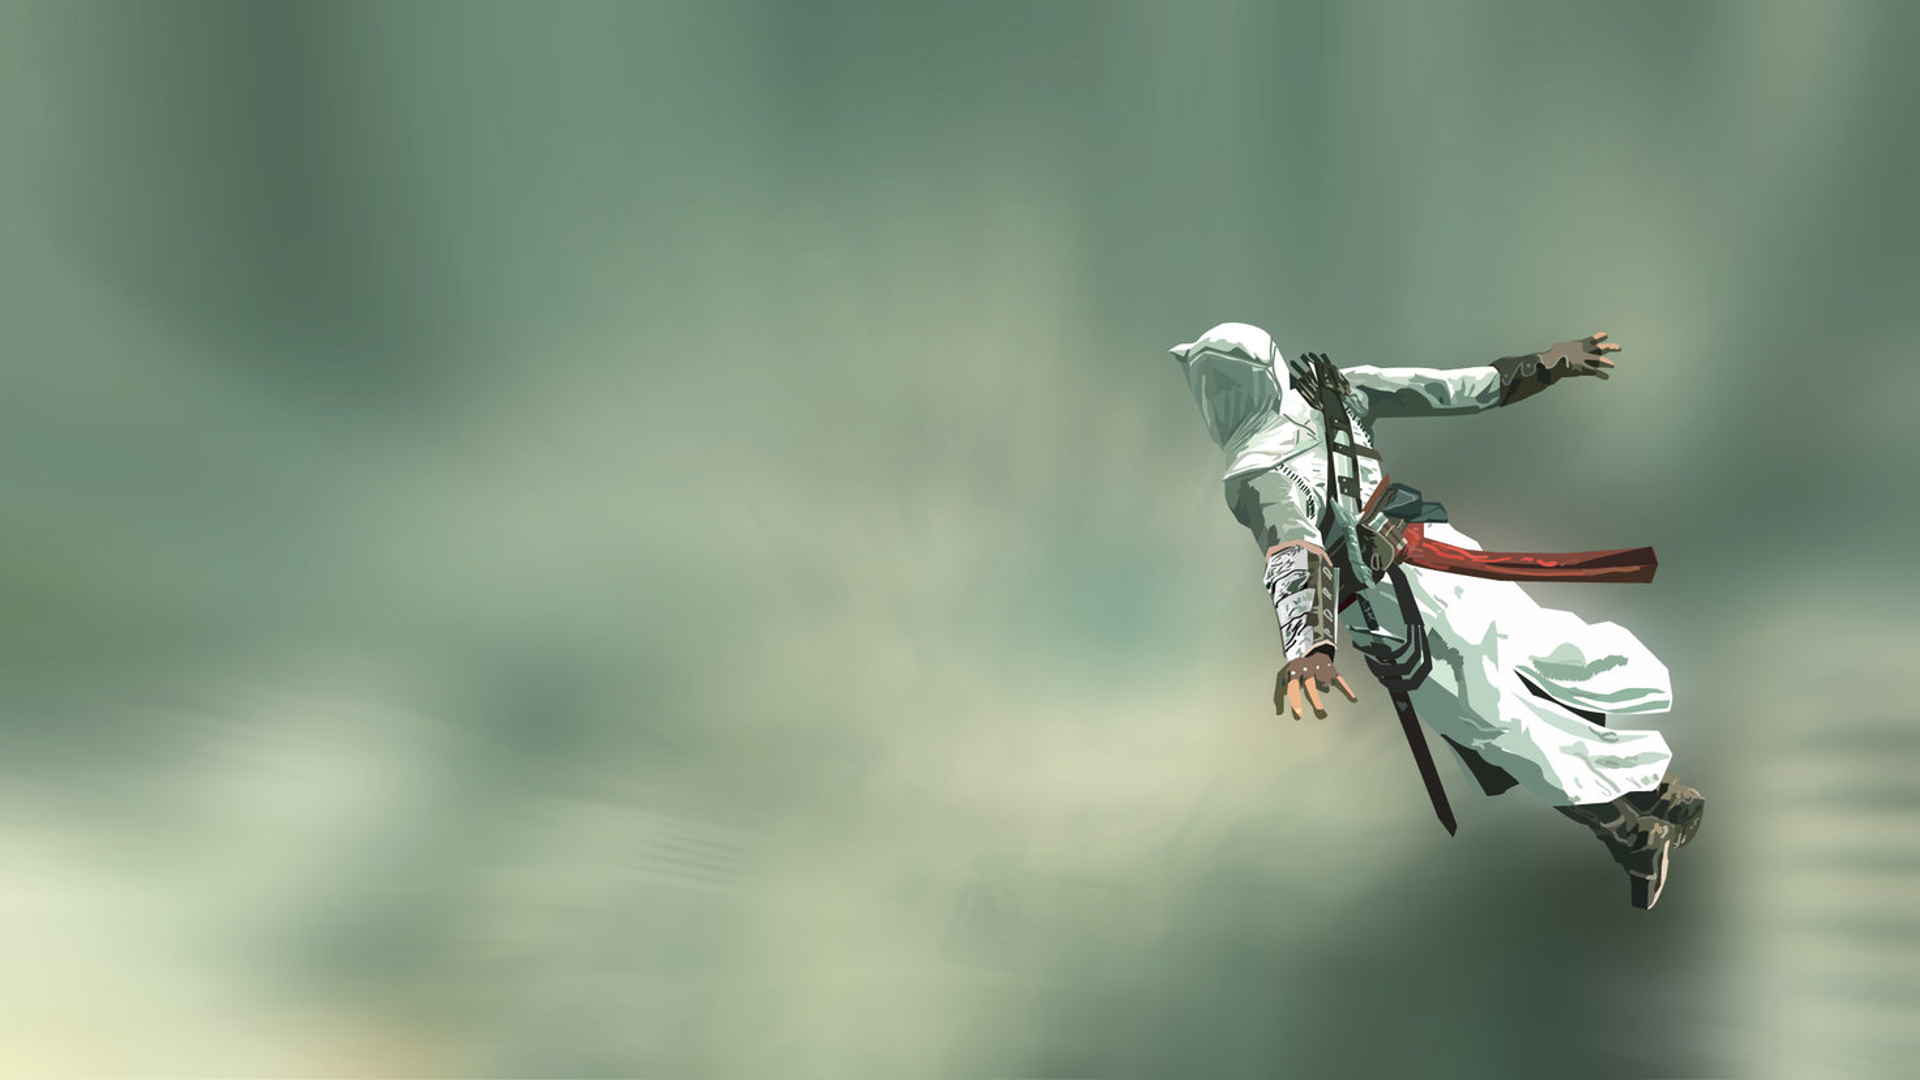 assassins creed jumping artwork HD Wallpaper